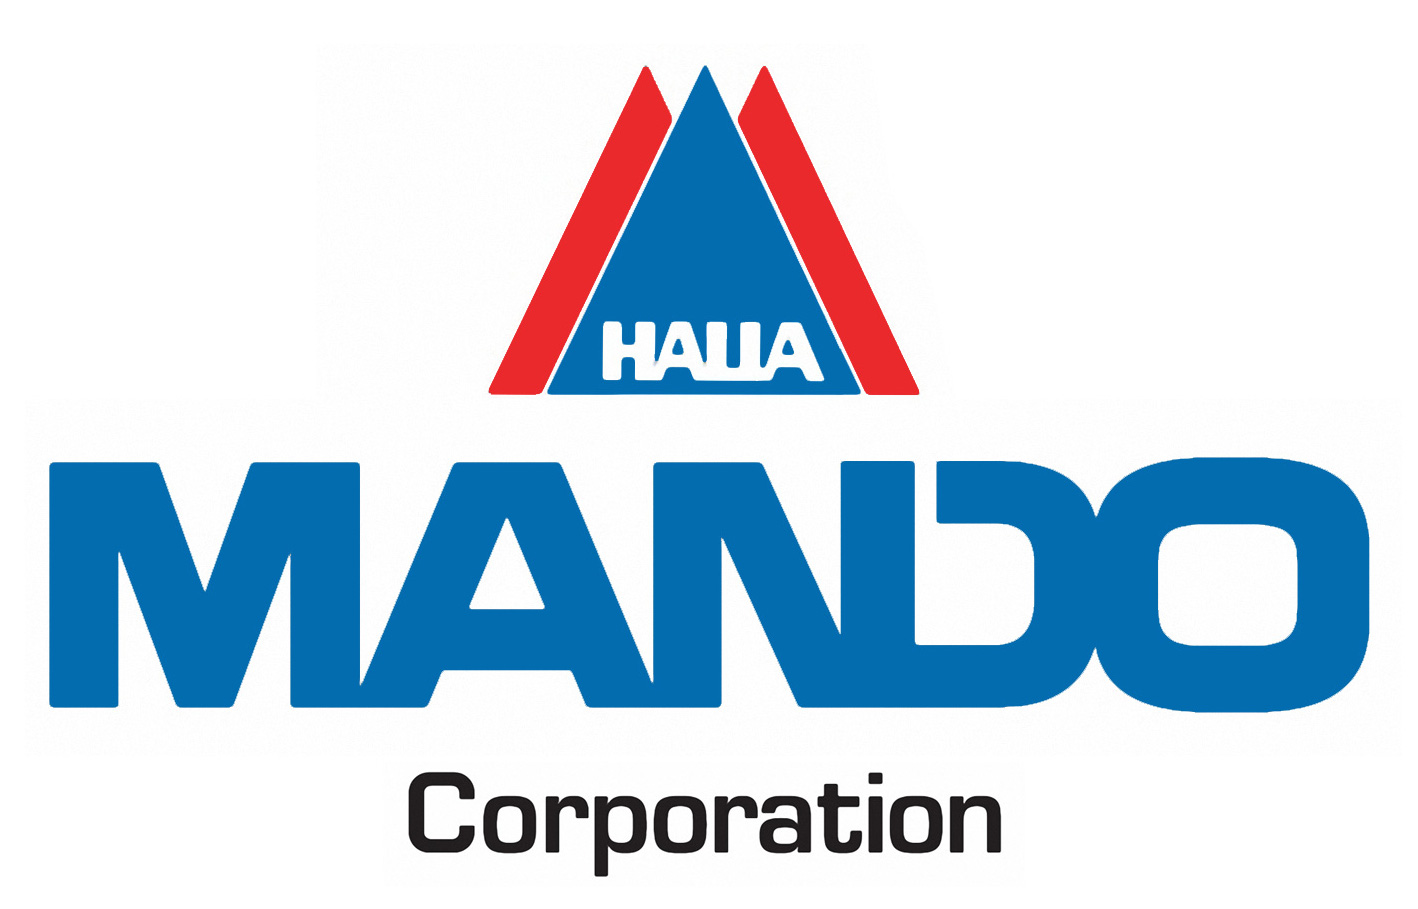 logo-mando-corporation1.jpg